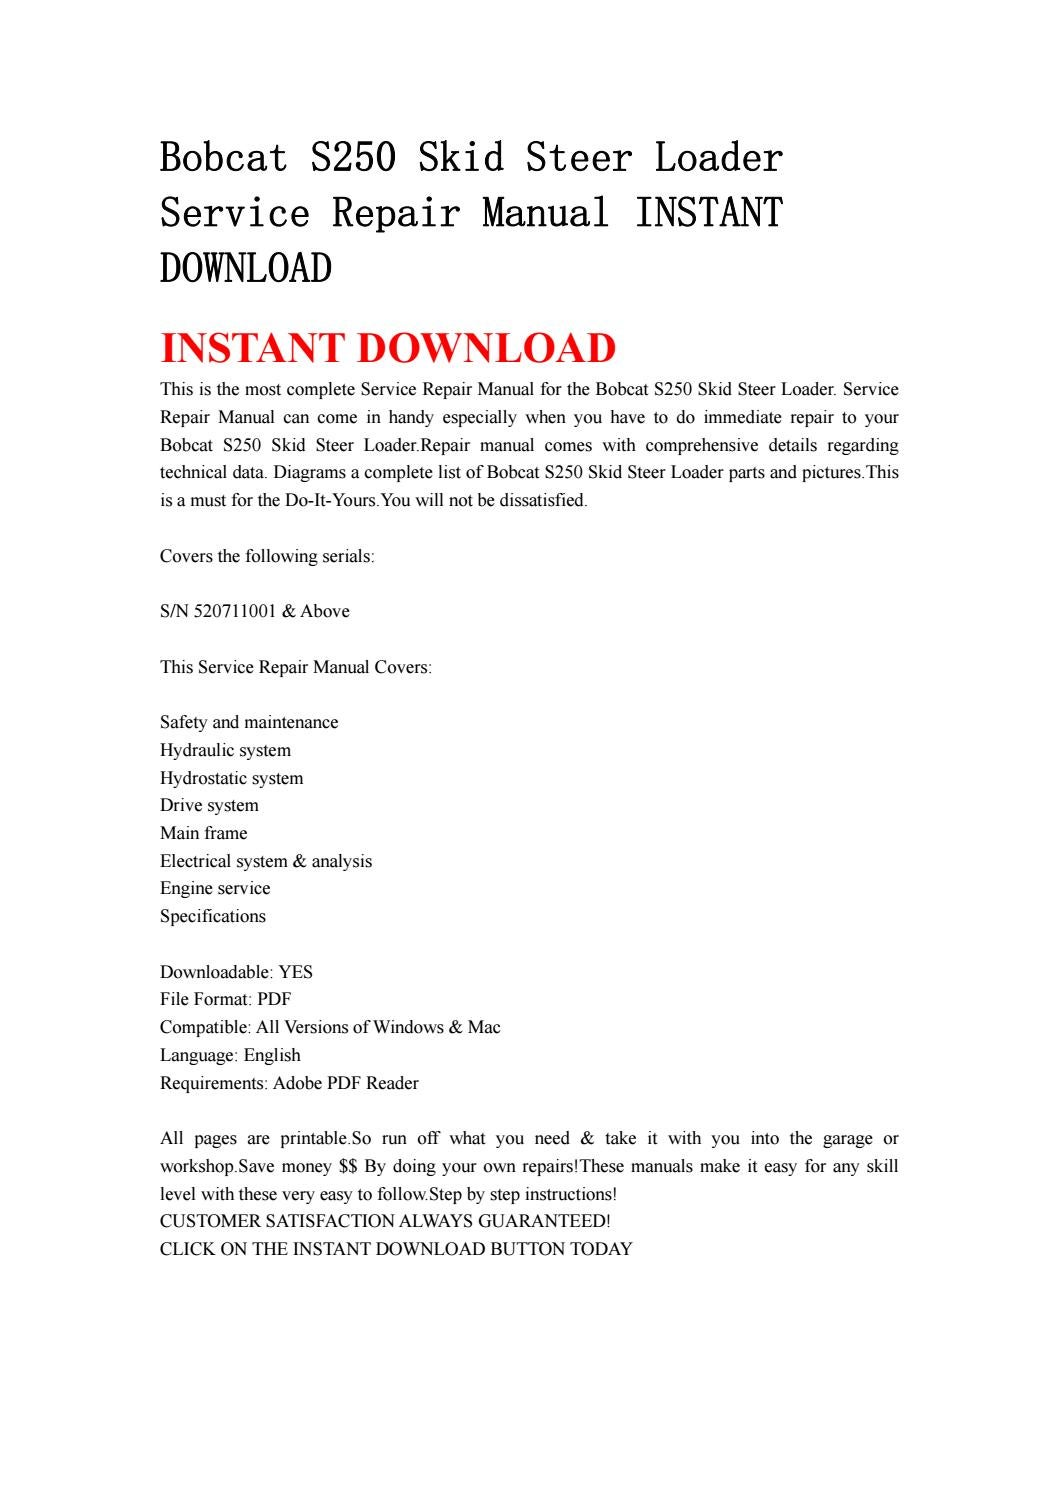 hight resolution of bobcat s250 skid steer loader service repair manual instant download by kjjshefjnsnef issuu